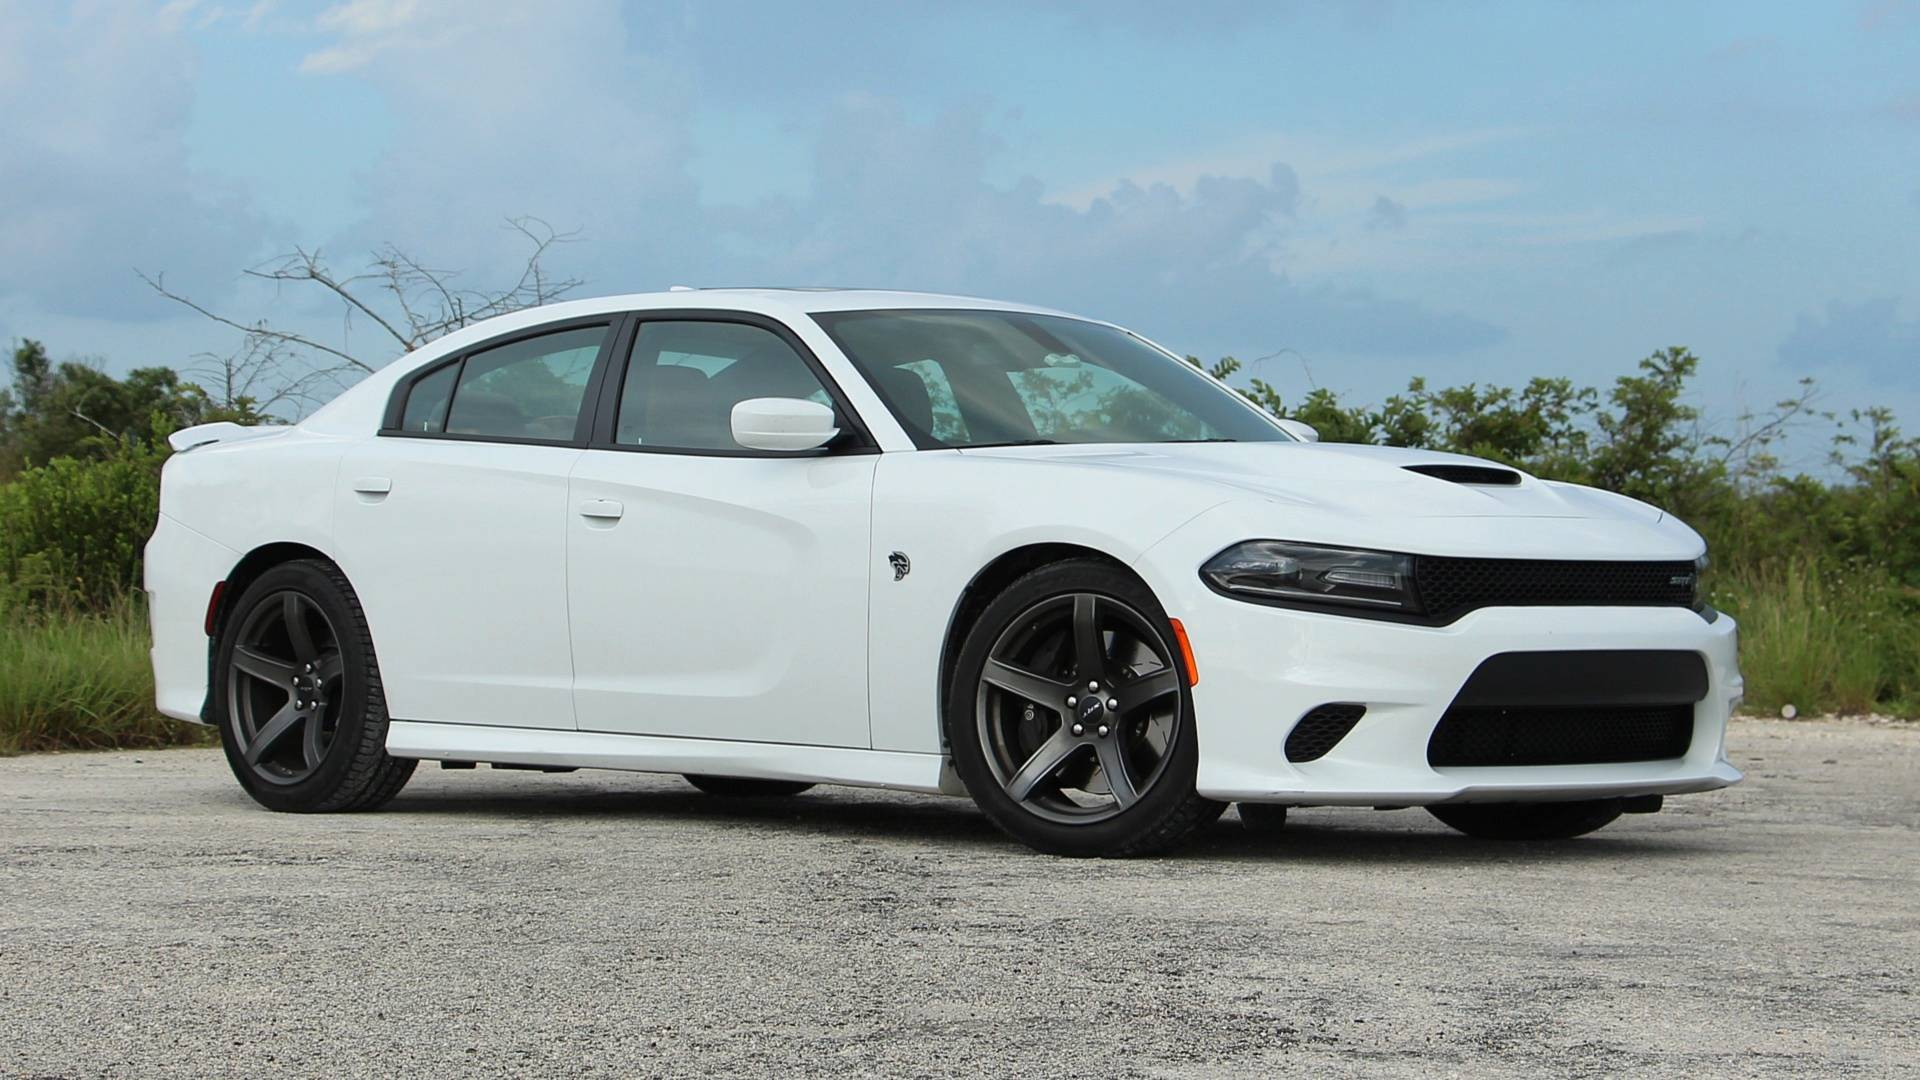 2018 Dodge Charger >> 2018 Dodge Charger Hellcat Review This Is America